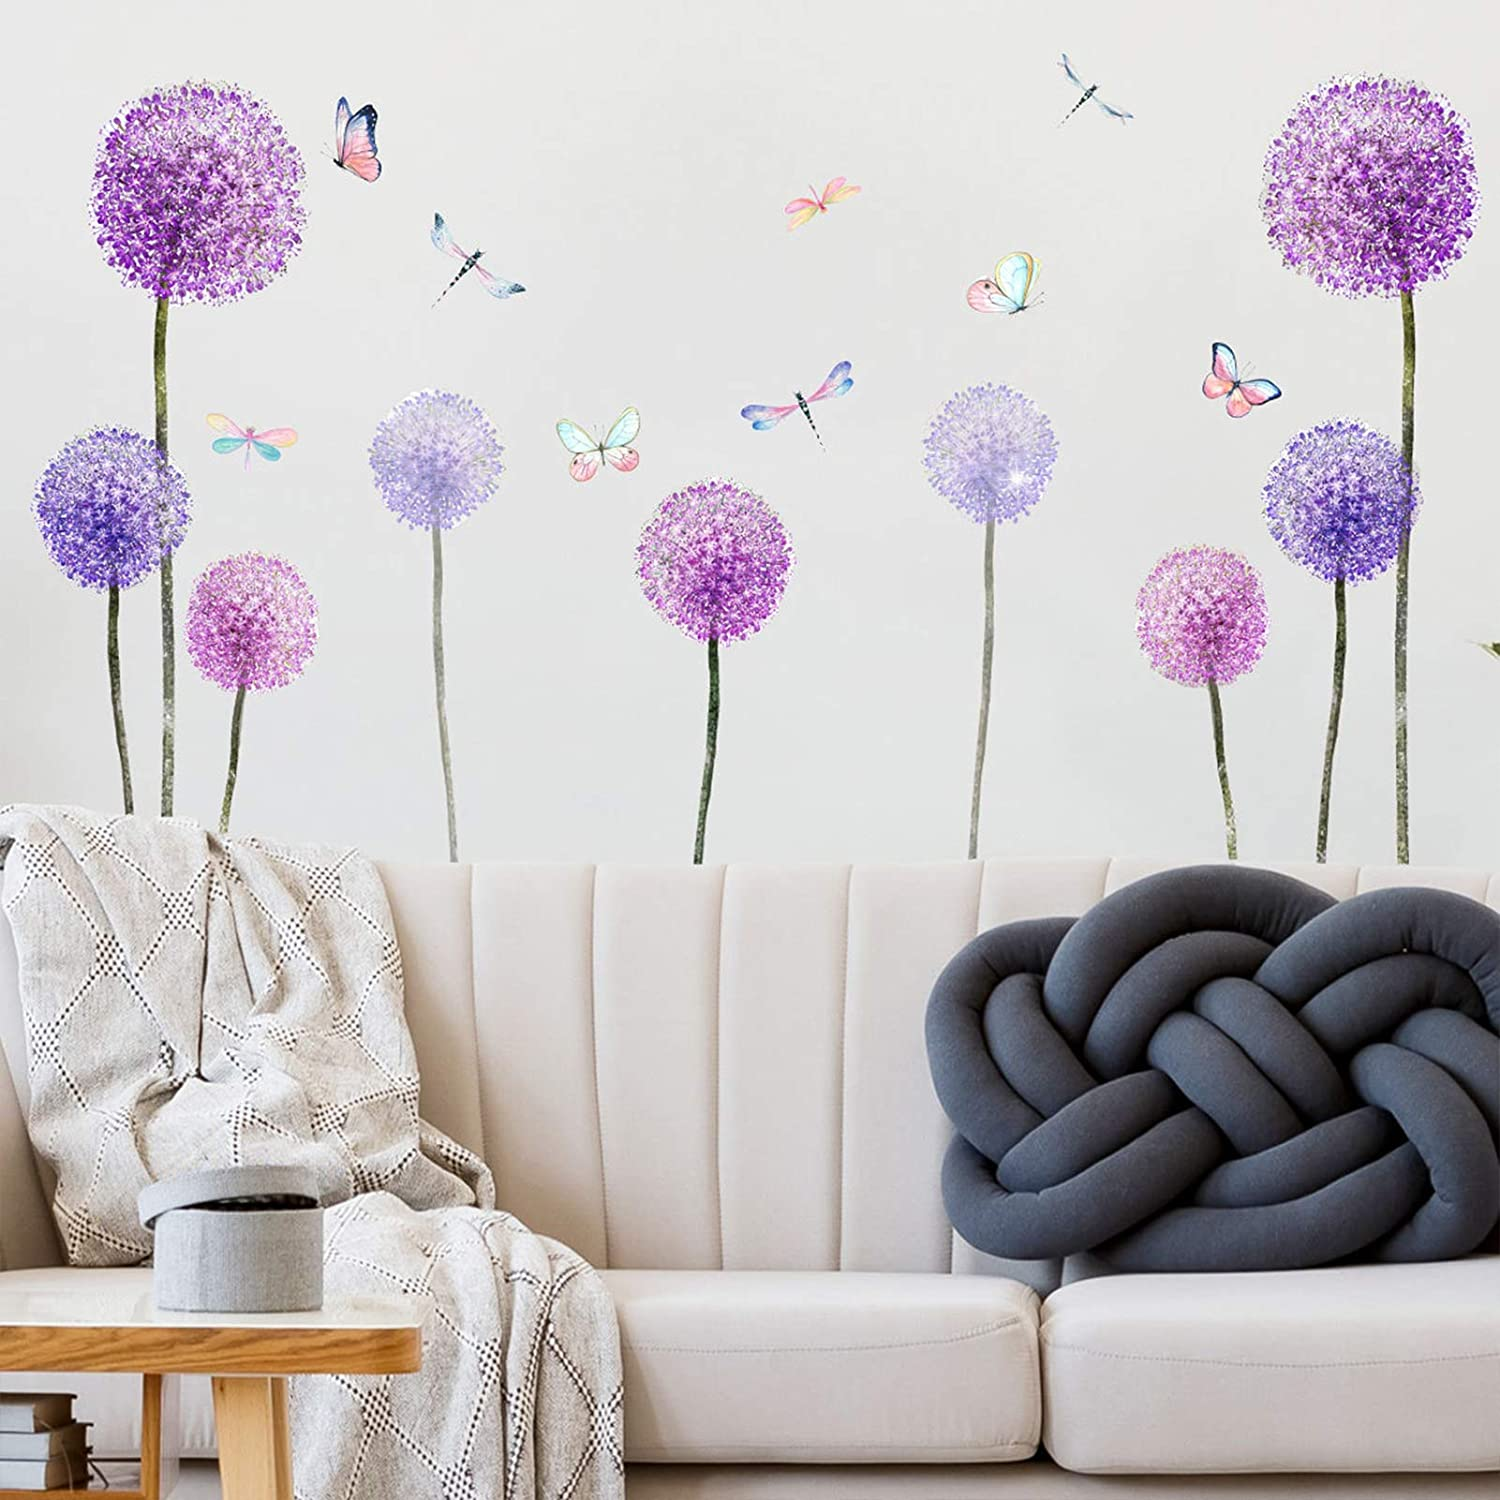 Dandelion Plant Wall Decals, Flying Violet Flowers Butterflies Dragonfly Wall Stickers , DILIBRA Removable Peel and Stick DIY Art Vinyl Mural for Classroom Kids Bedroom Bathroom Nursery Home Decor